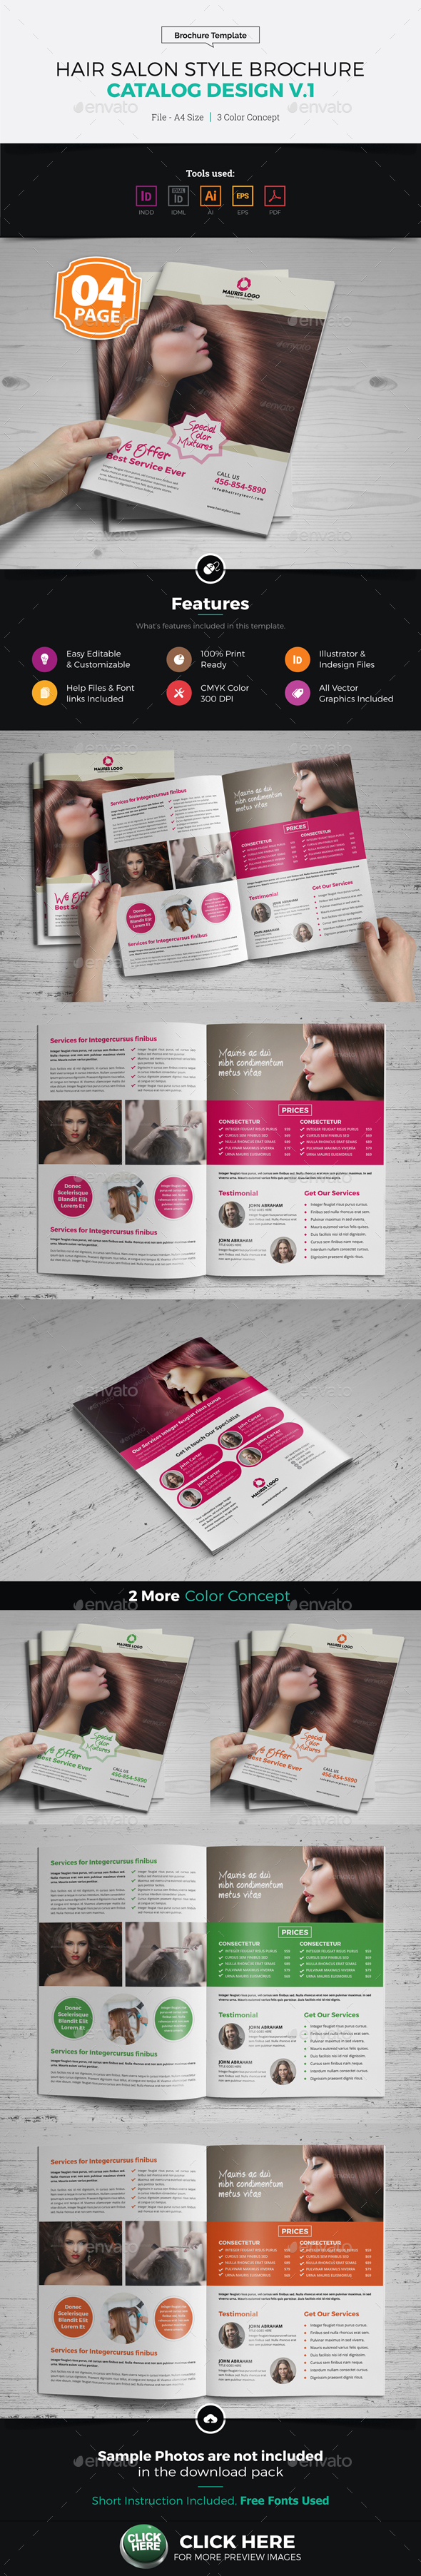 Hair Salon Style Brochure Design - Corporate Brochures